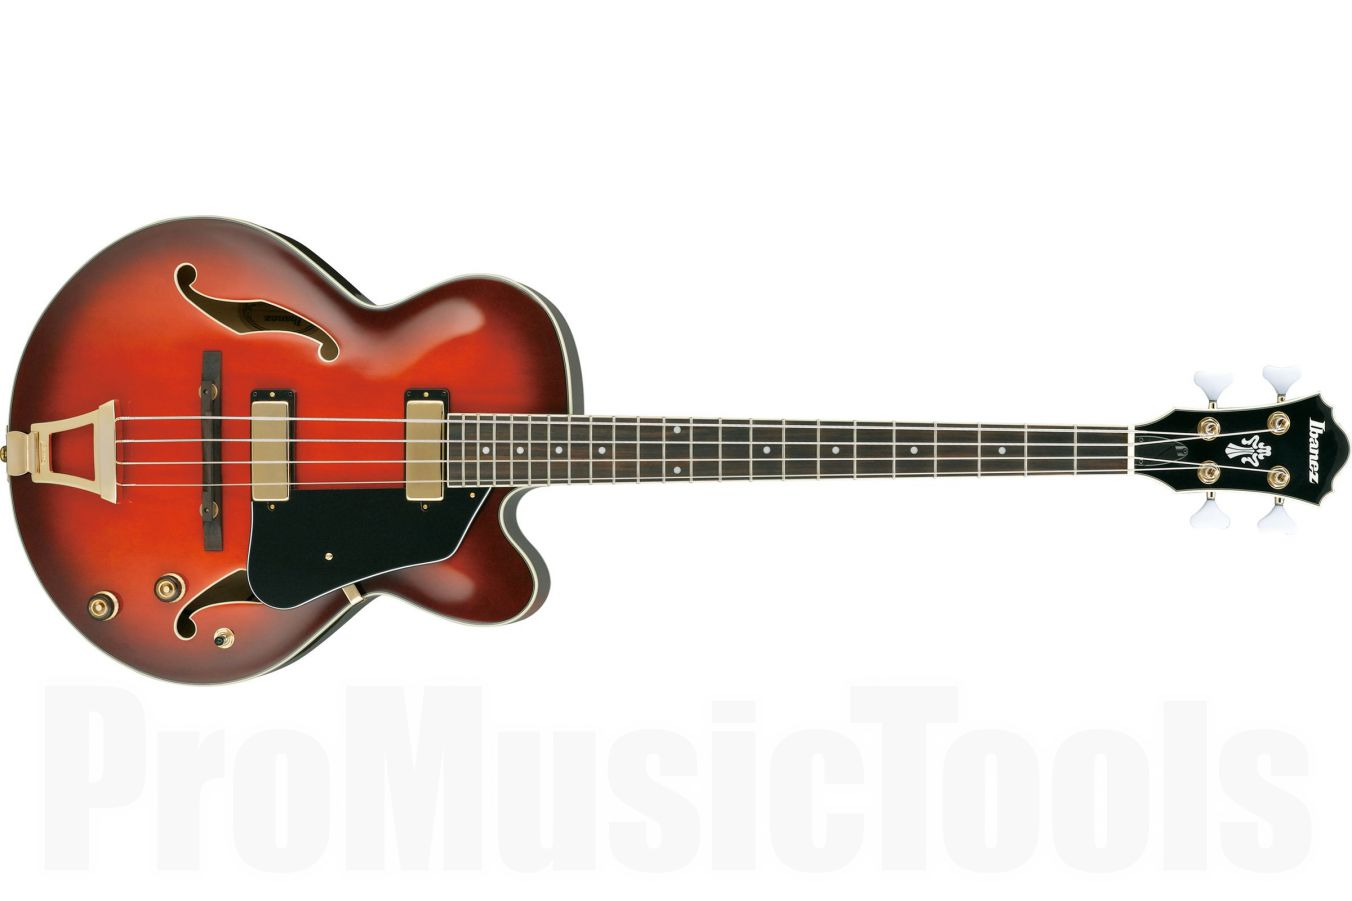 Ibanez AFB200 SRD - Sunset Red - b-stock (1x opened box)